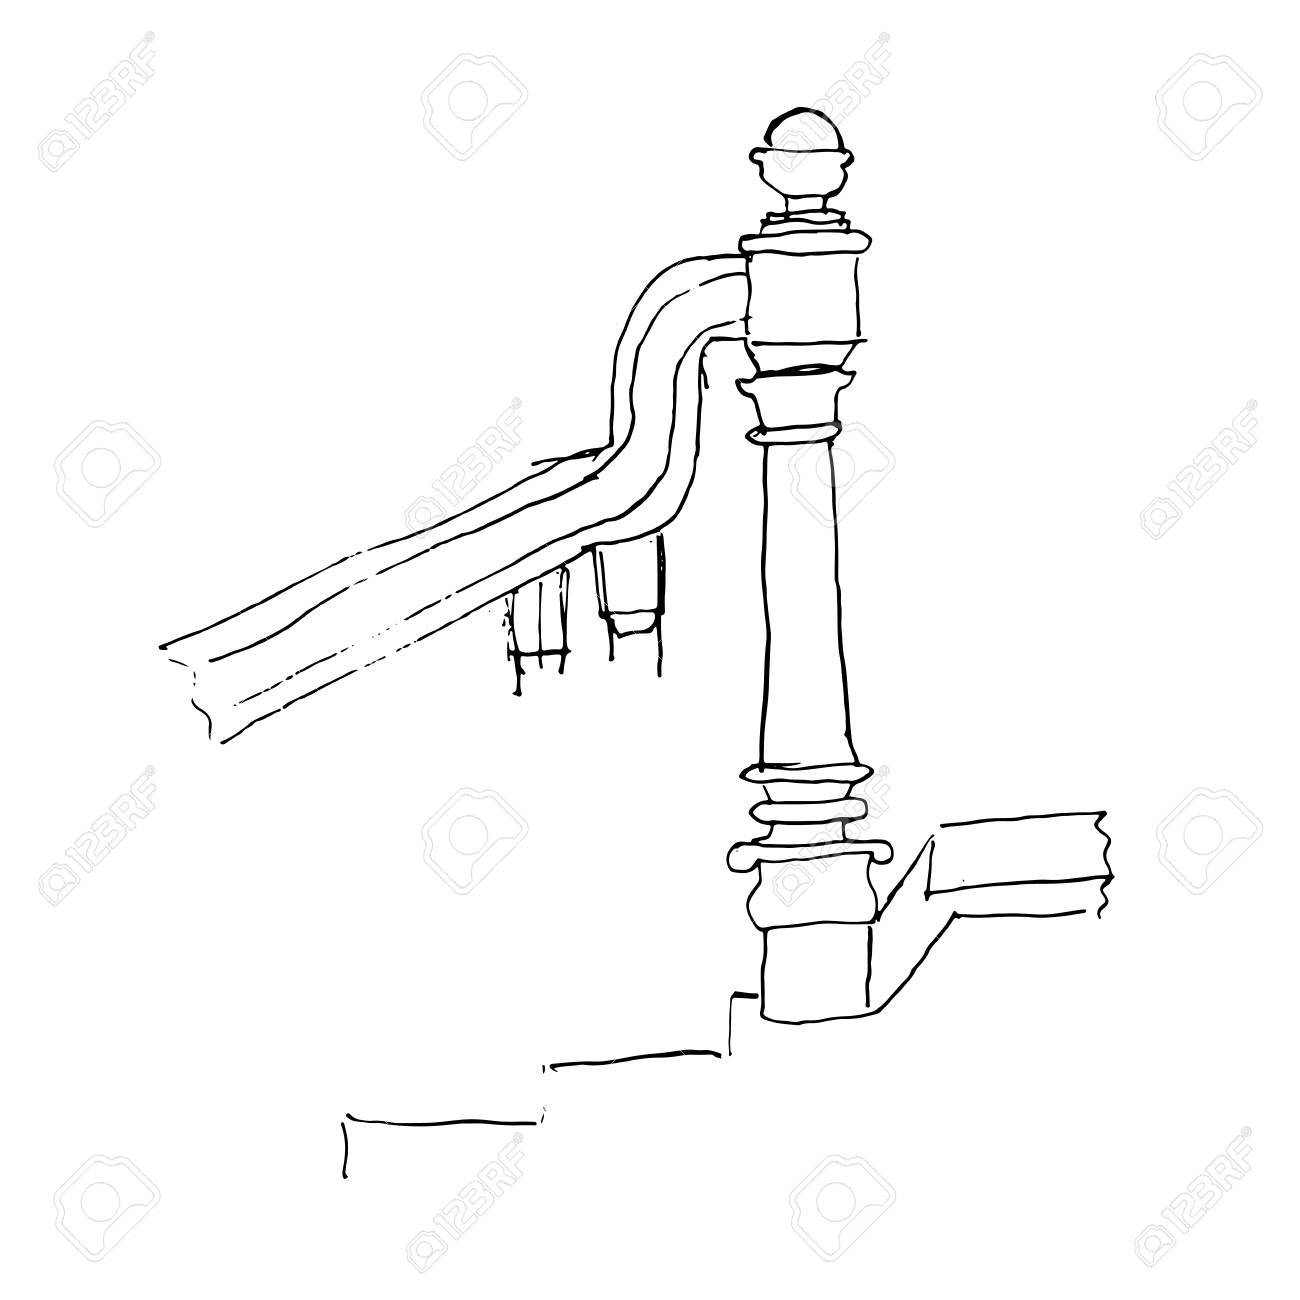 hight resolution of stair part draft sketch black outline on white background vector illustration stock vector